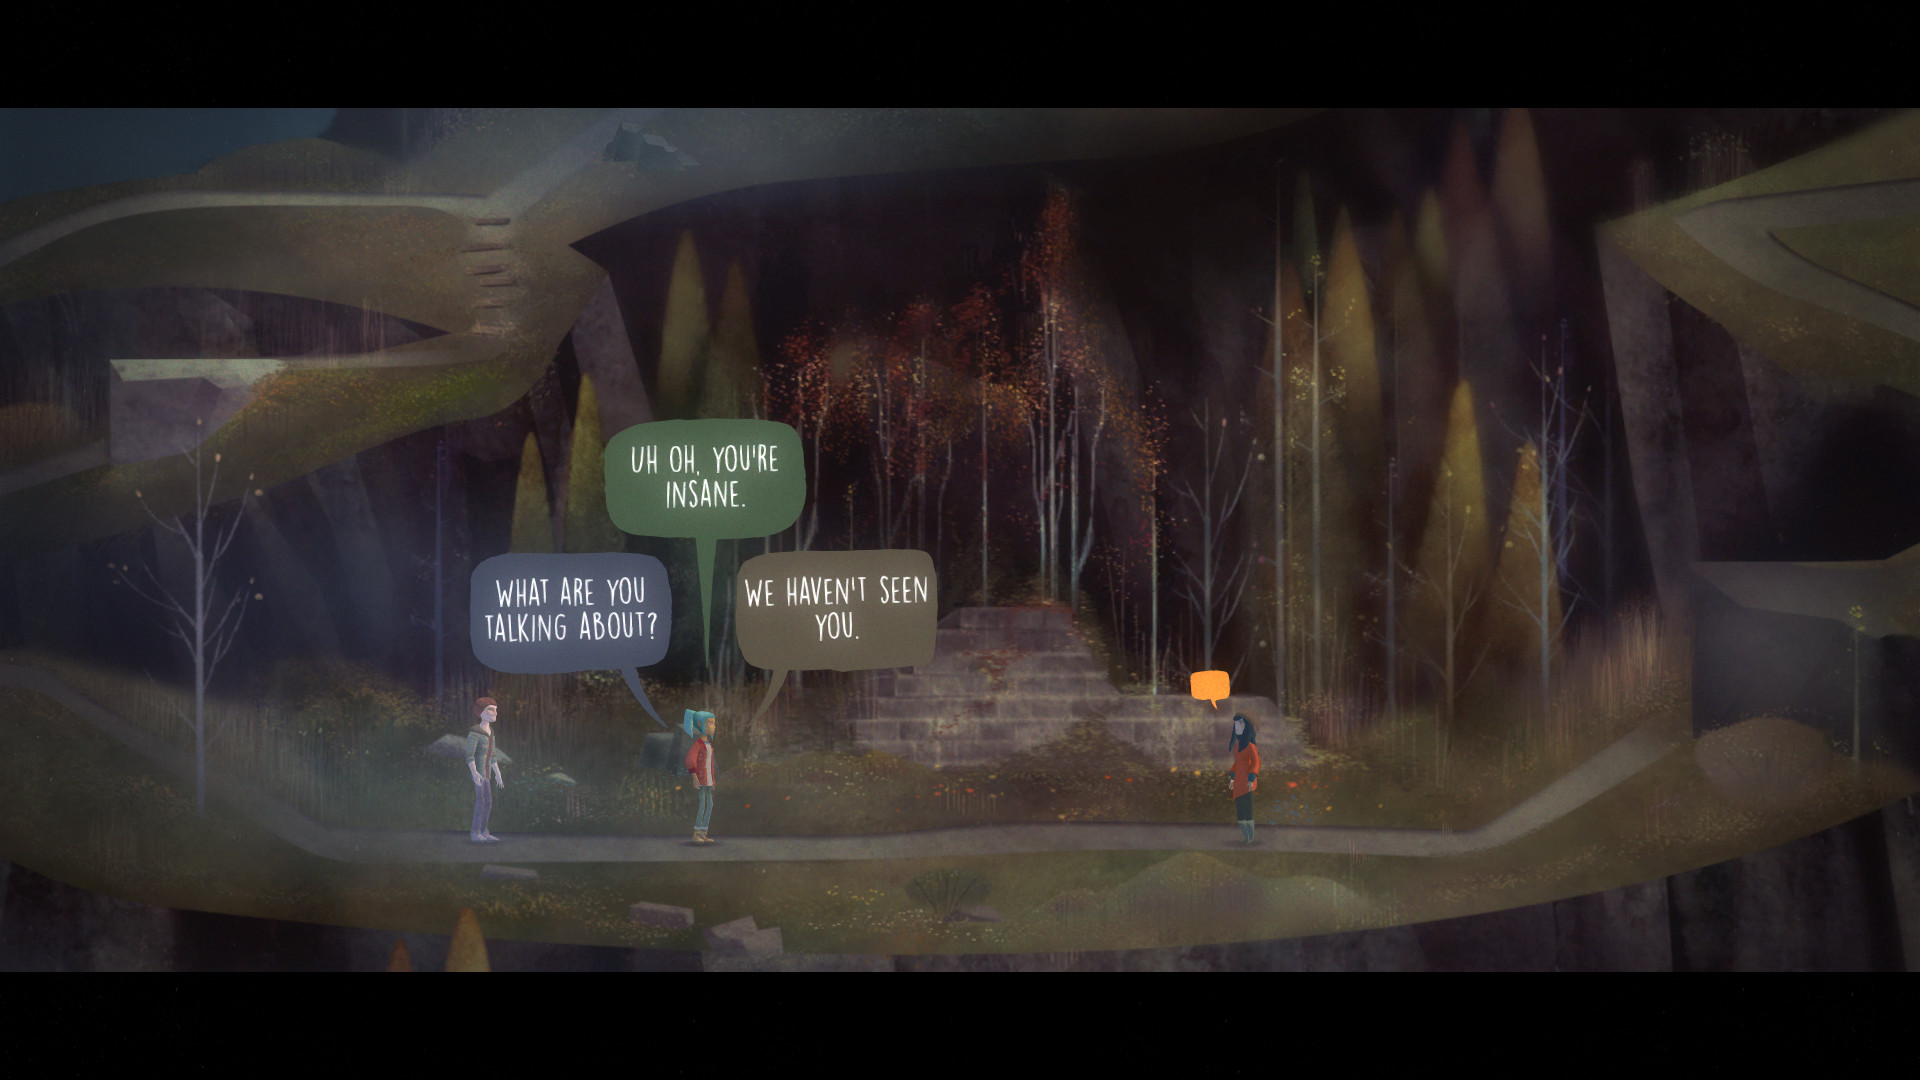 A screenshot of three characters in Oxenfree. One is displaying a choice of three speech bubbles - 'What are you talking about?', 'Uh oh. You're insane' and 'We haven't seen you'.